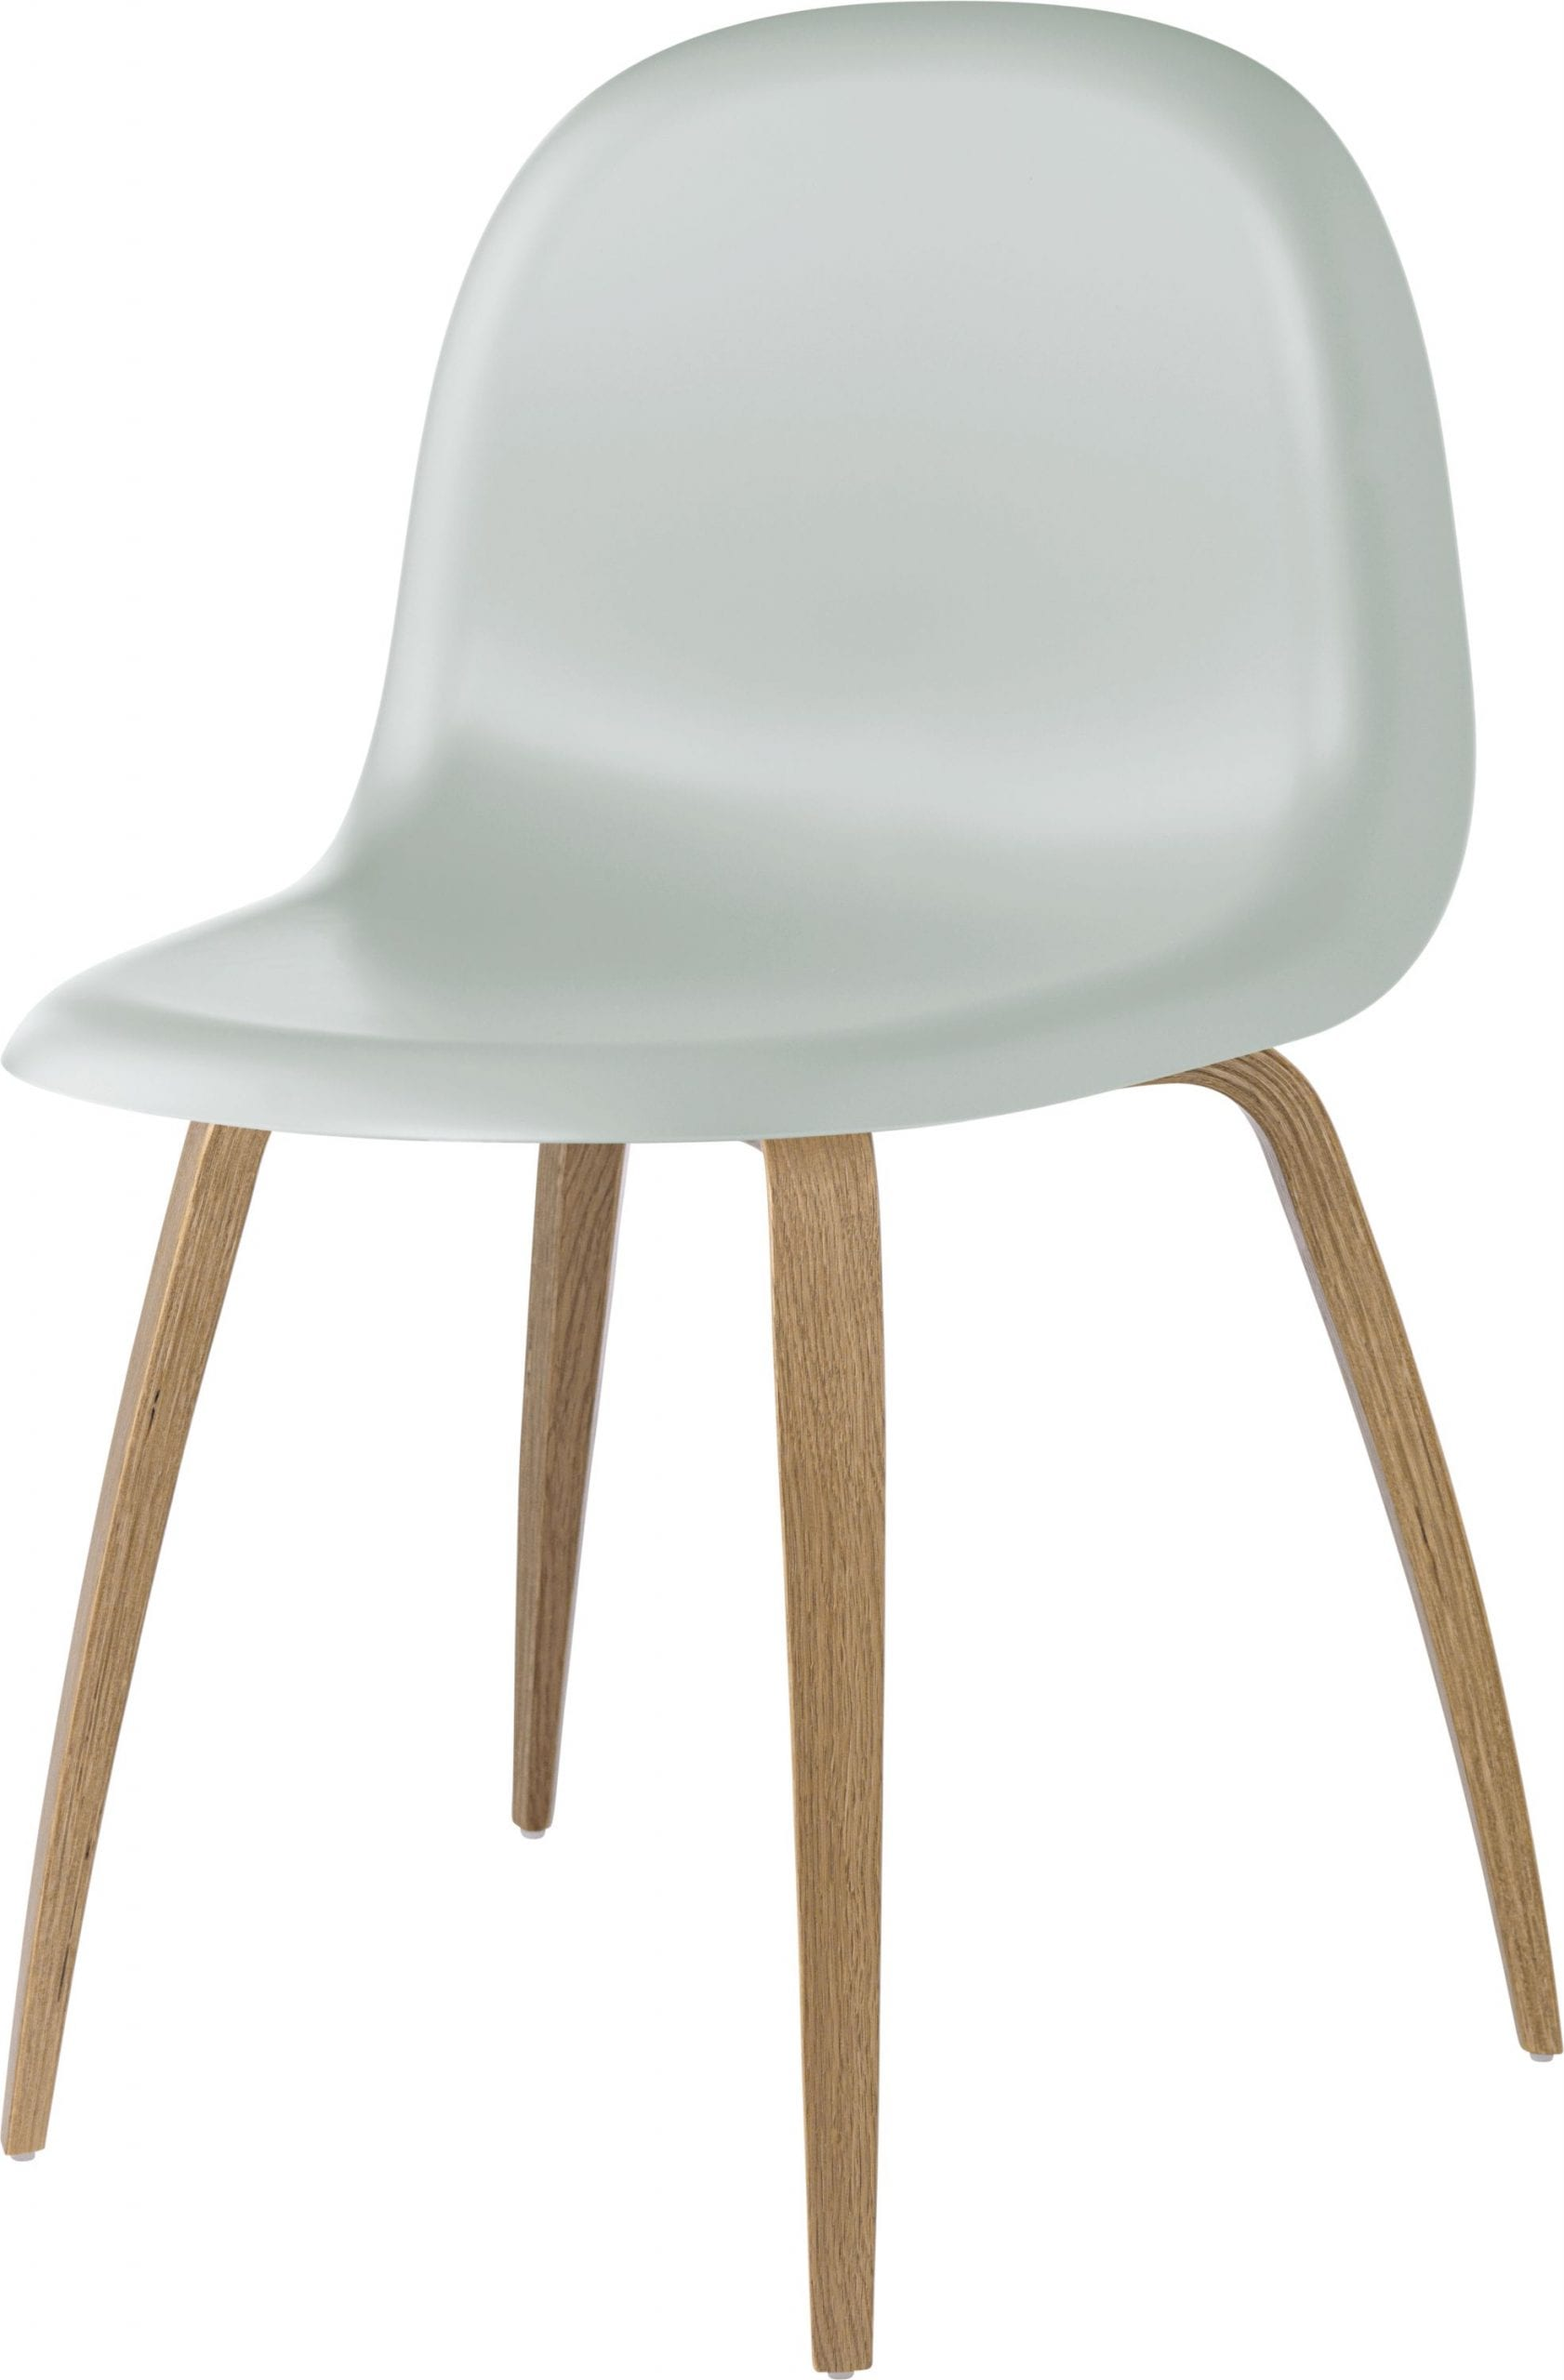 3D Dining Chair- Wood Base